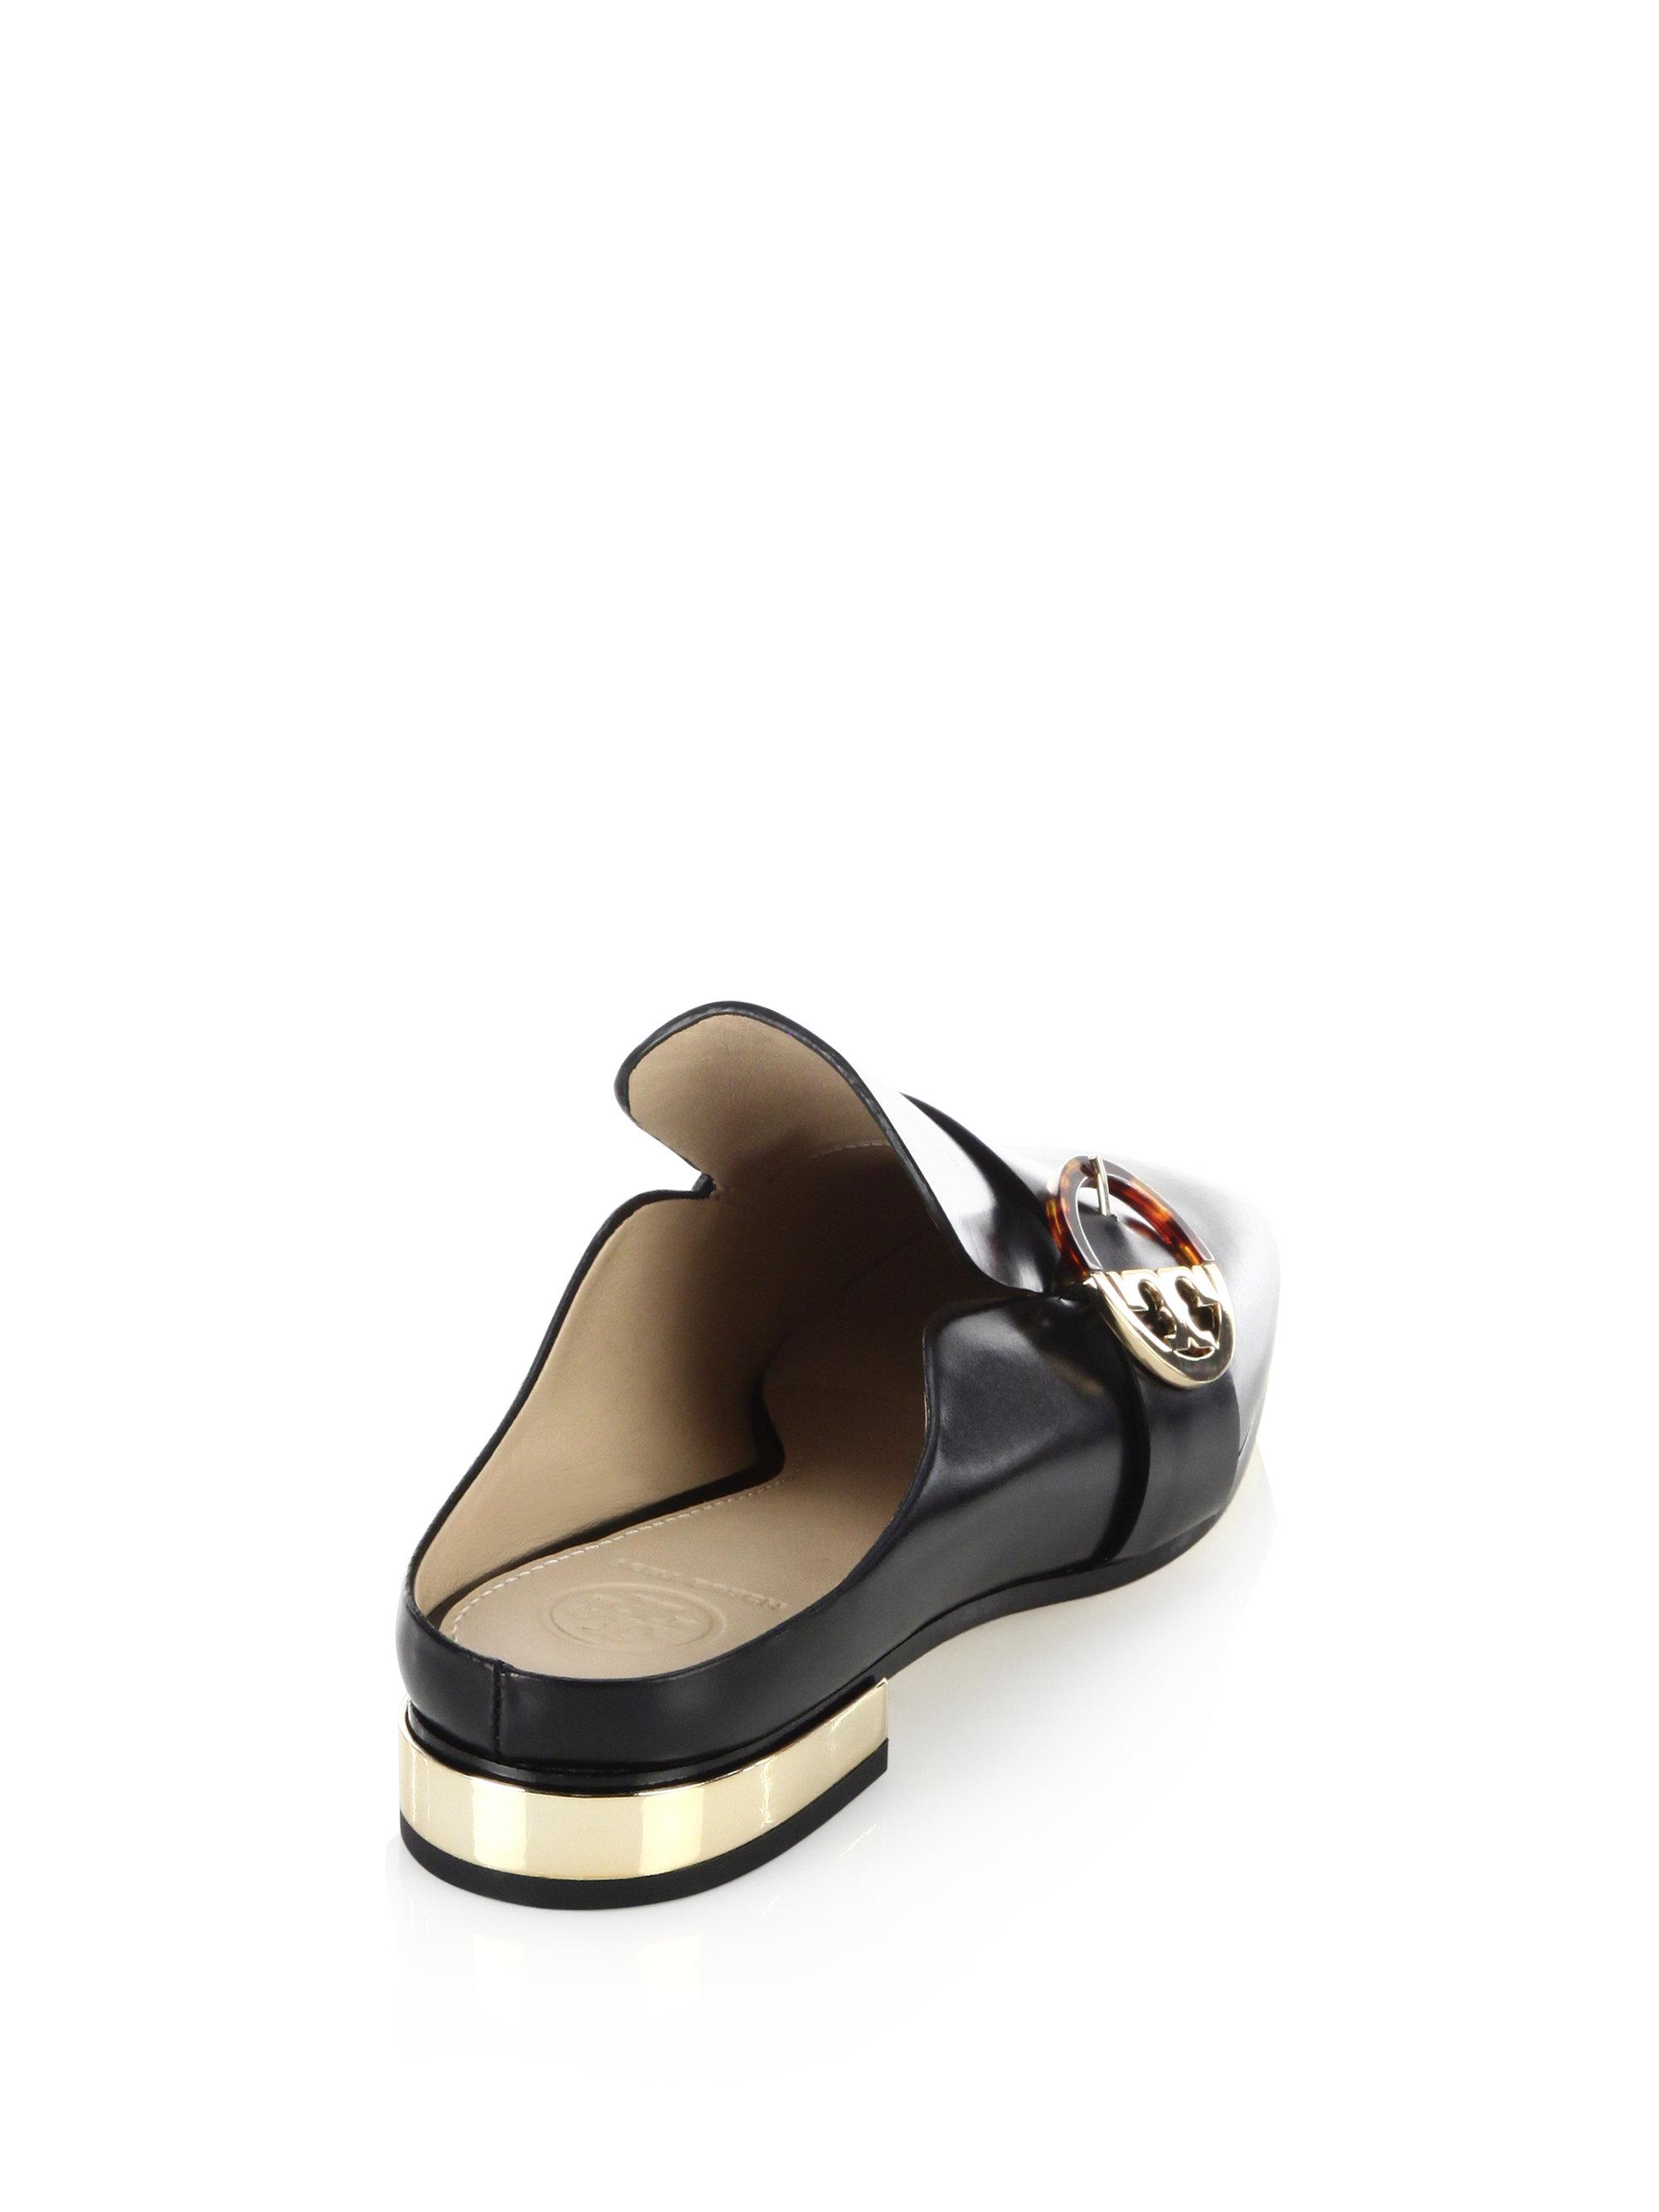 b5746b42b4ca Lyst - Tory Burch Sidney Backless Leather Loafers in Black